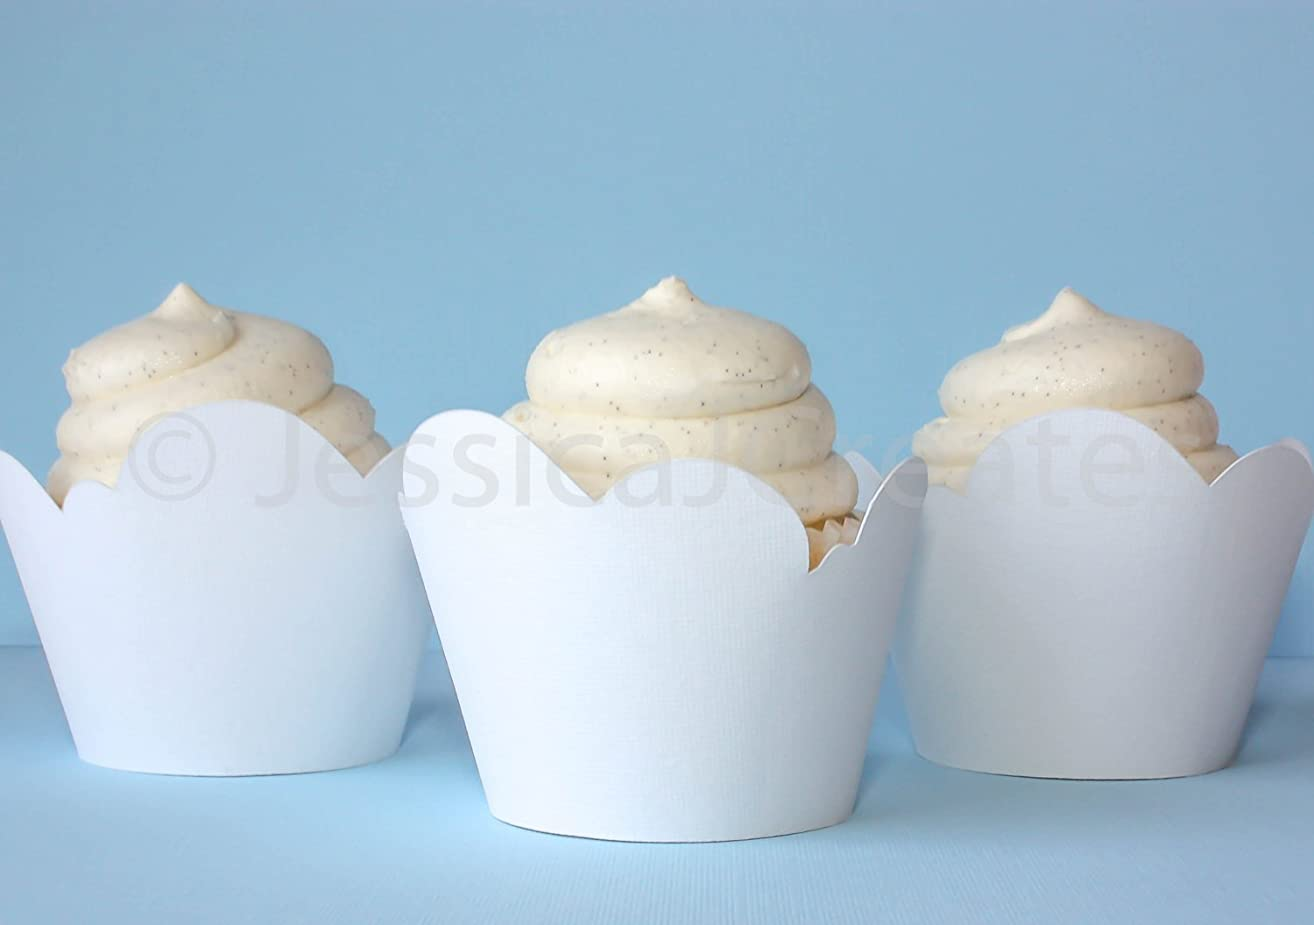 Cupcake Wrapper - White Cloud Cupcake Wrappers - Cloud Cupcake Wrappers - Cupcakes - Cupcake Wrapper - 12 ct